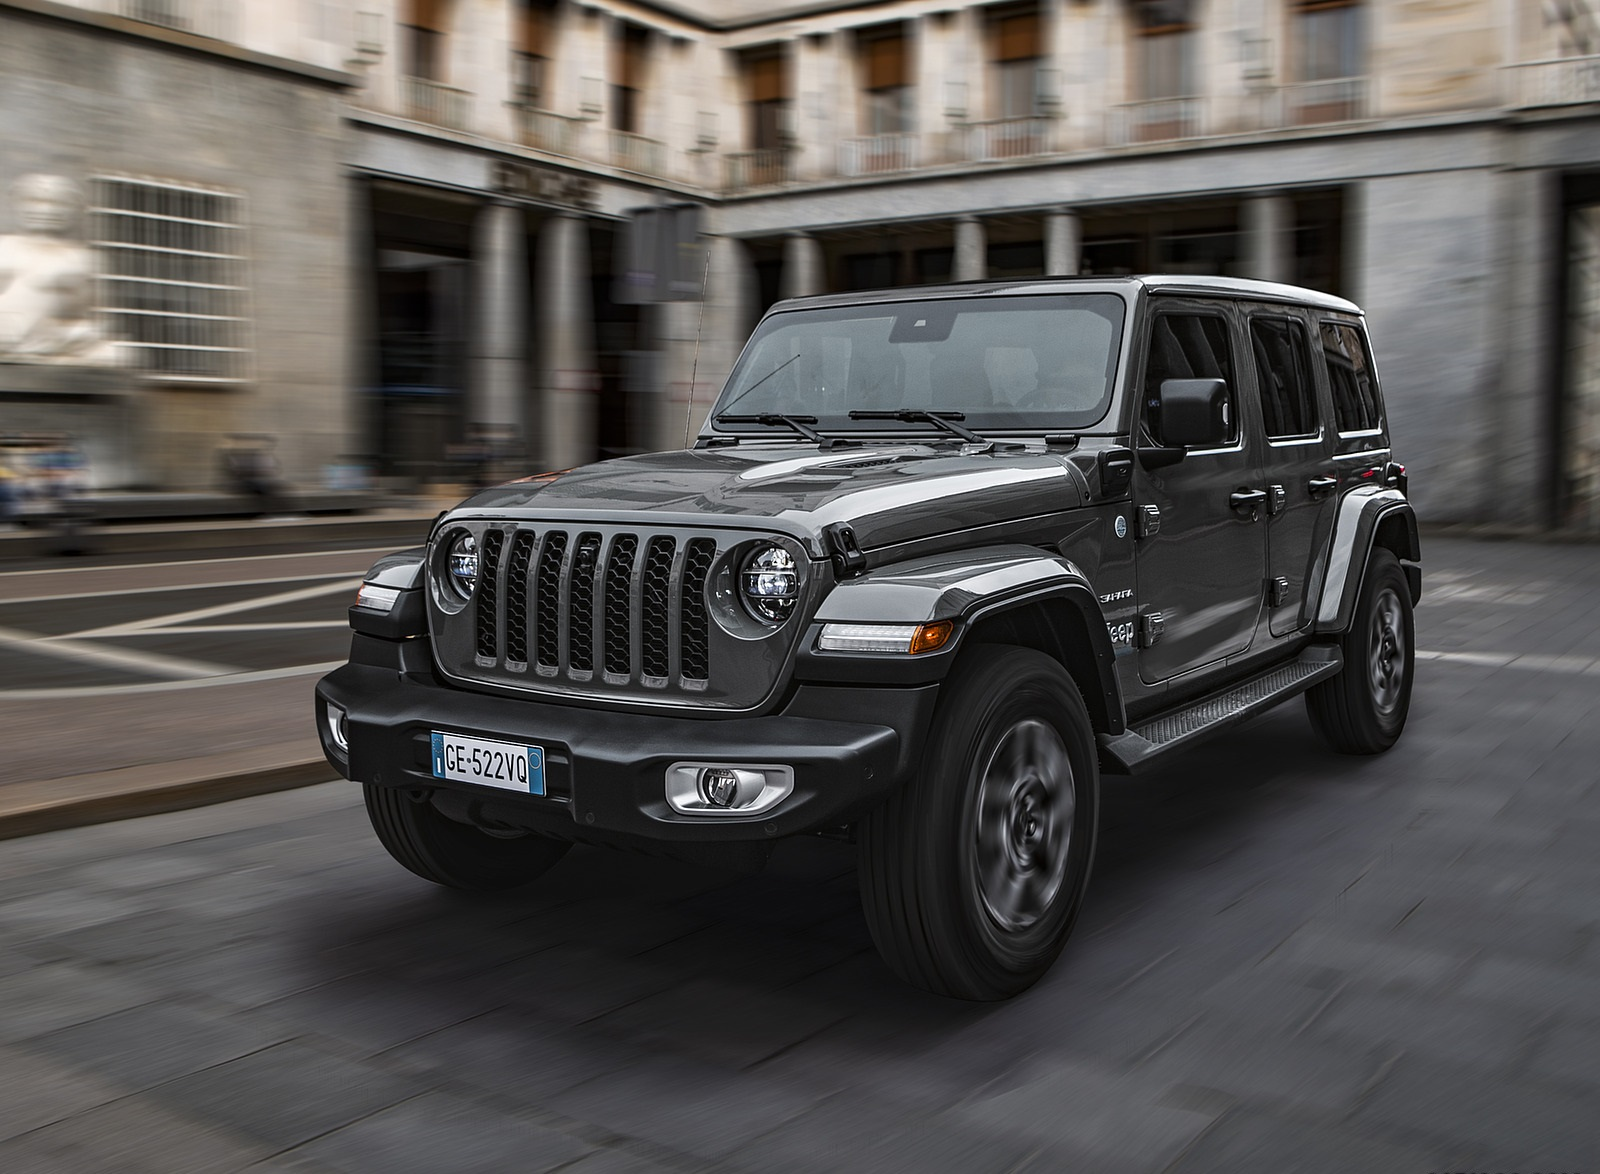 2021 Jeep Wrangler 4xe (Euro-Spec; Plug-In Hybrid) Front Three-Quarter Wallpapers (10)